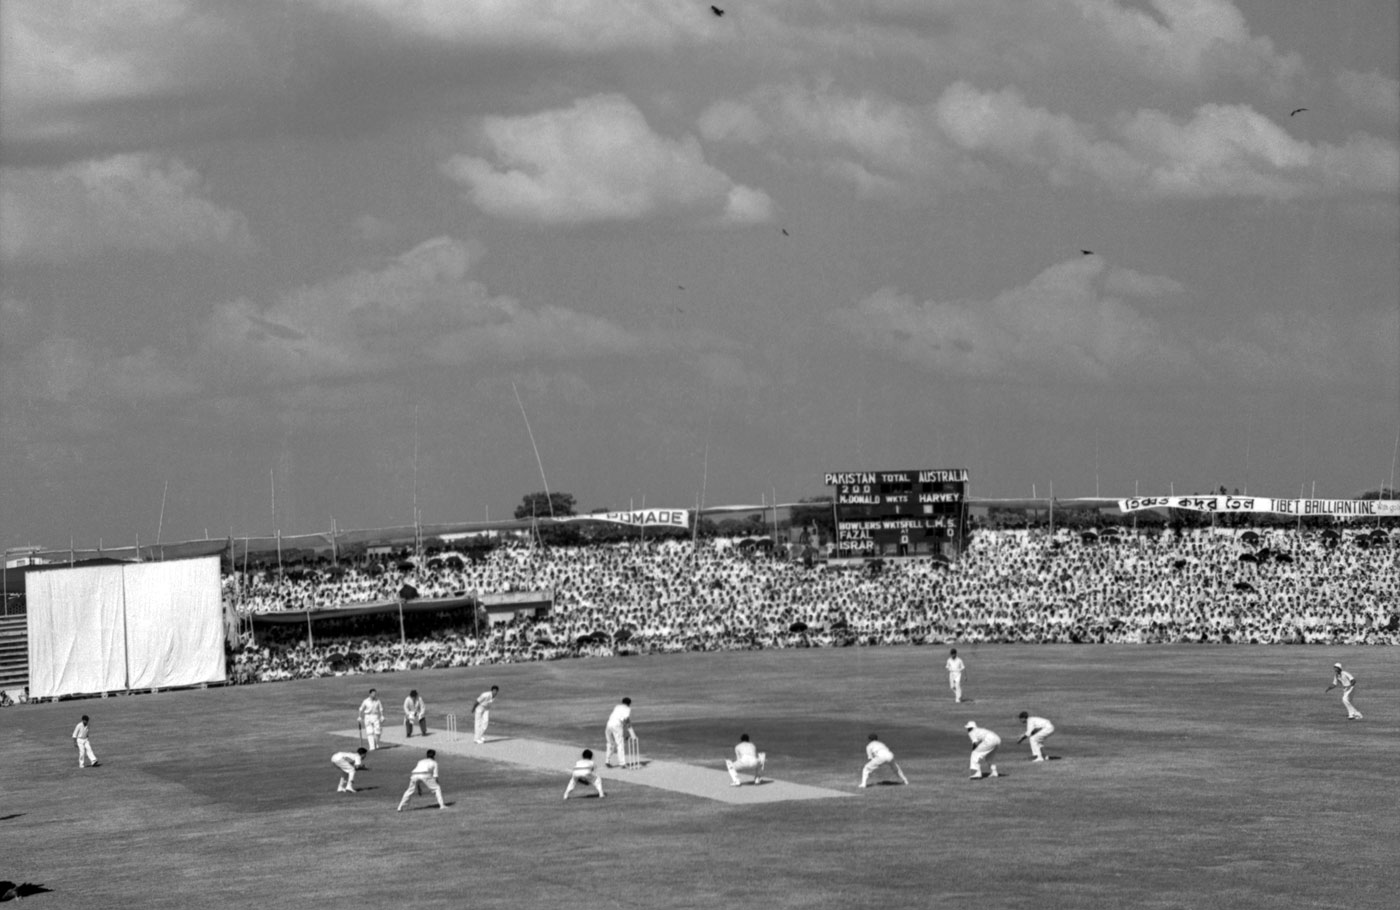 A Test match in Dhaka (then Dacca) between Pakistan and Australia in 1959. Before Bangladesh was created in 1971, the region was known as East Pakistan